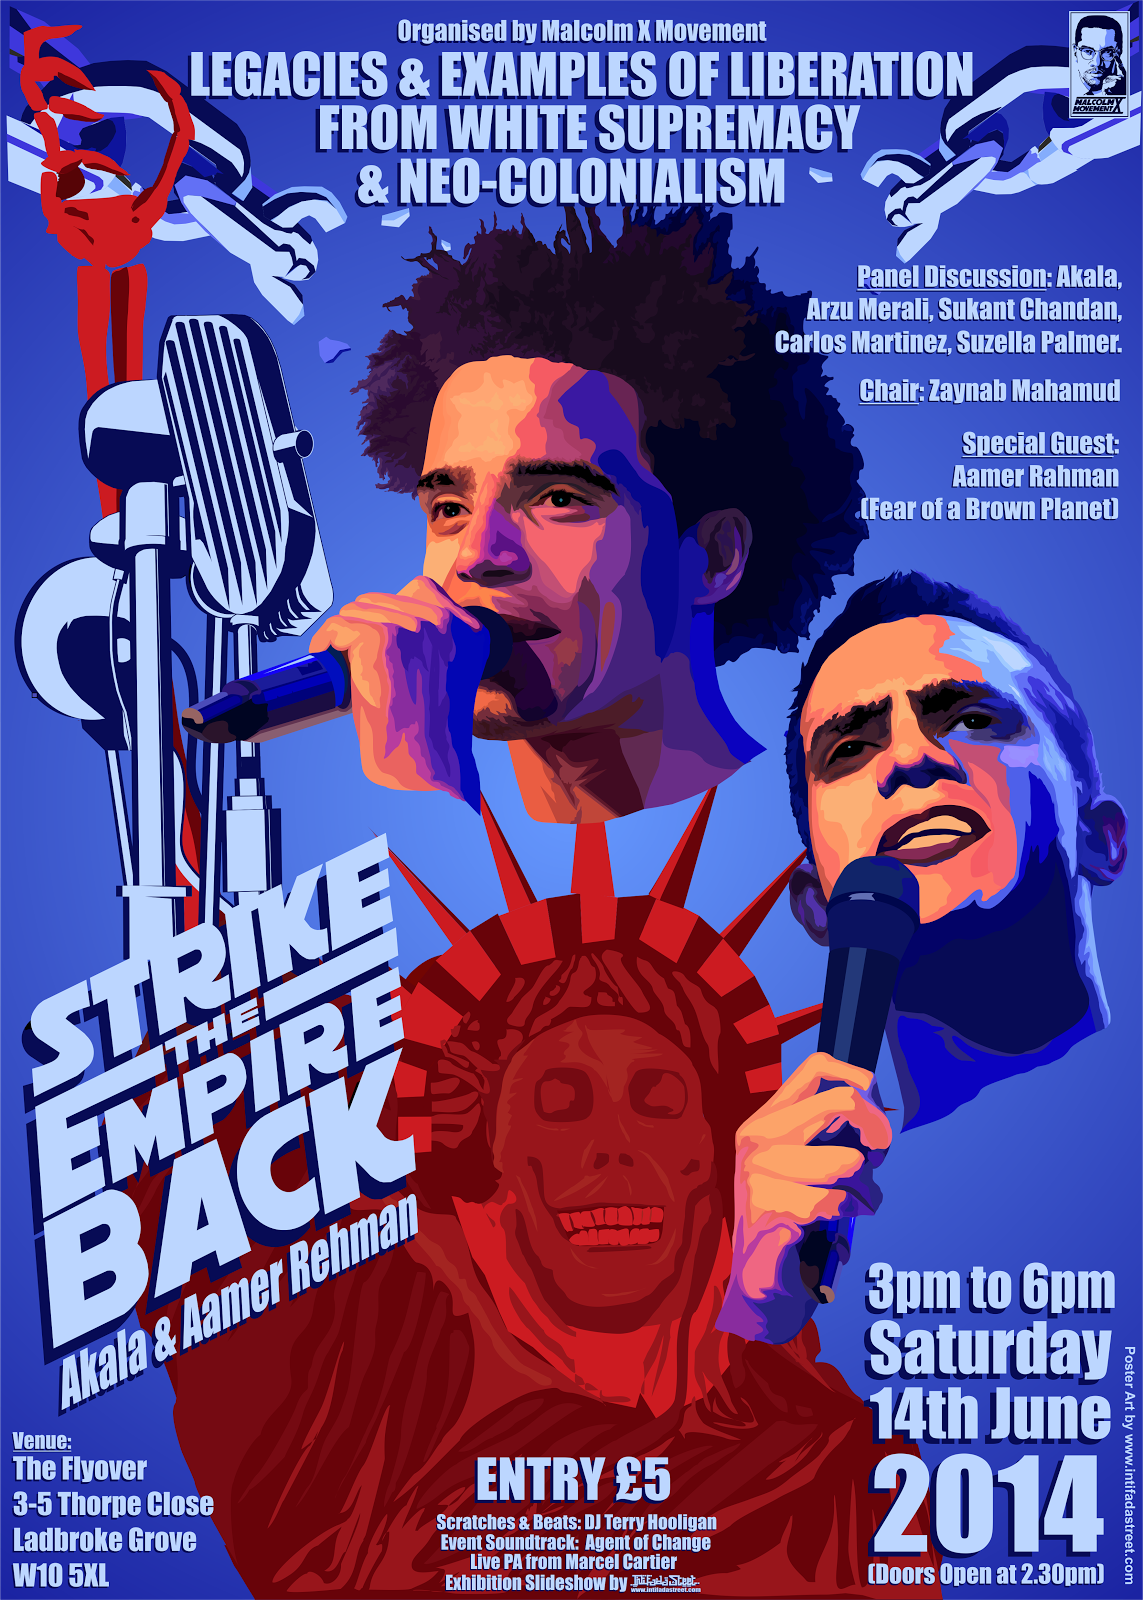 PUBLIC EVENT: STRIKE THE EMPIRE BACK: legacies and examples of liberation from neo-colonialism and